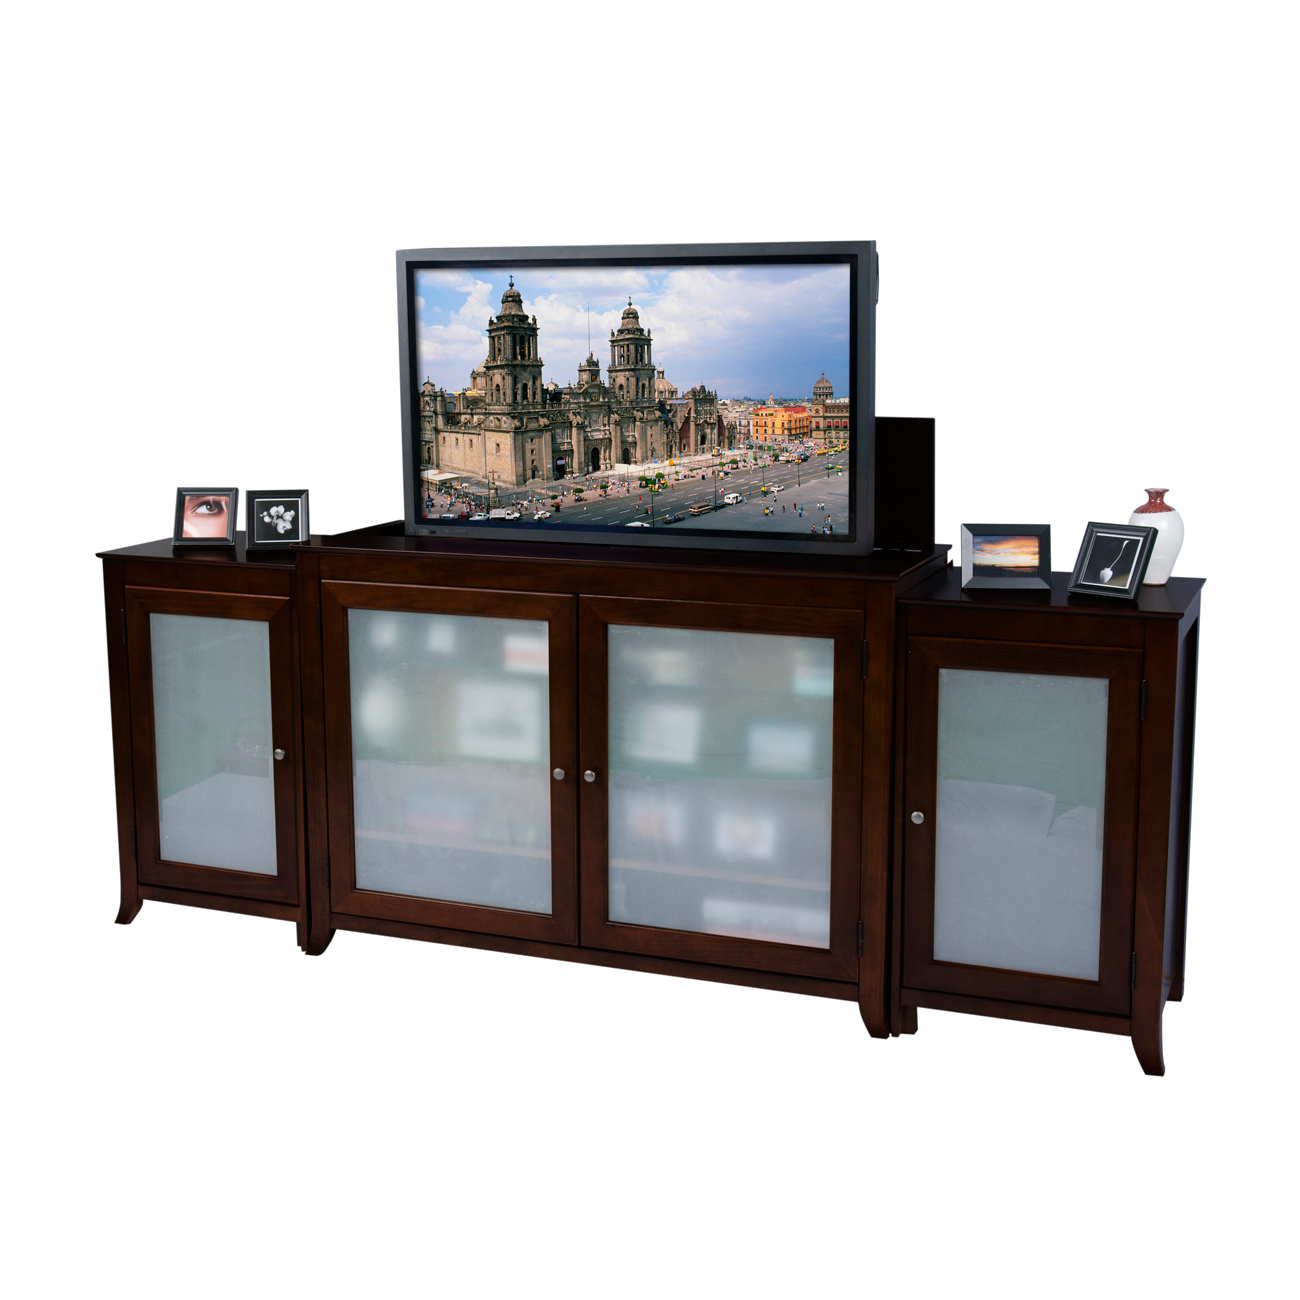 Tuscany espresso tv lift cabinet with side cabinets for for Tv lift consoles for flat screens